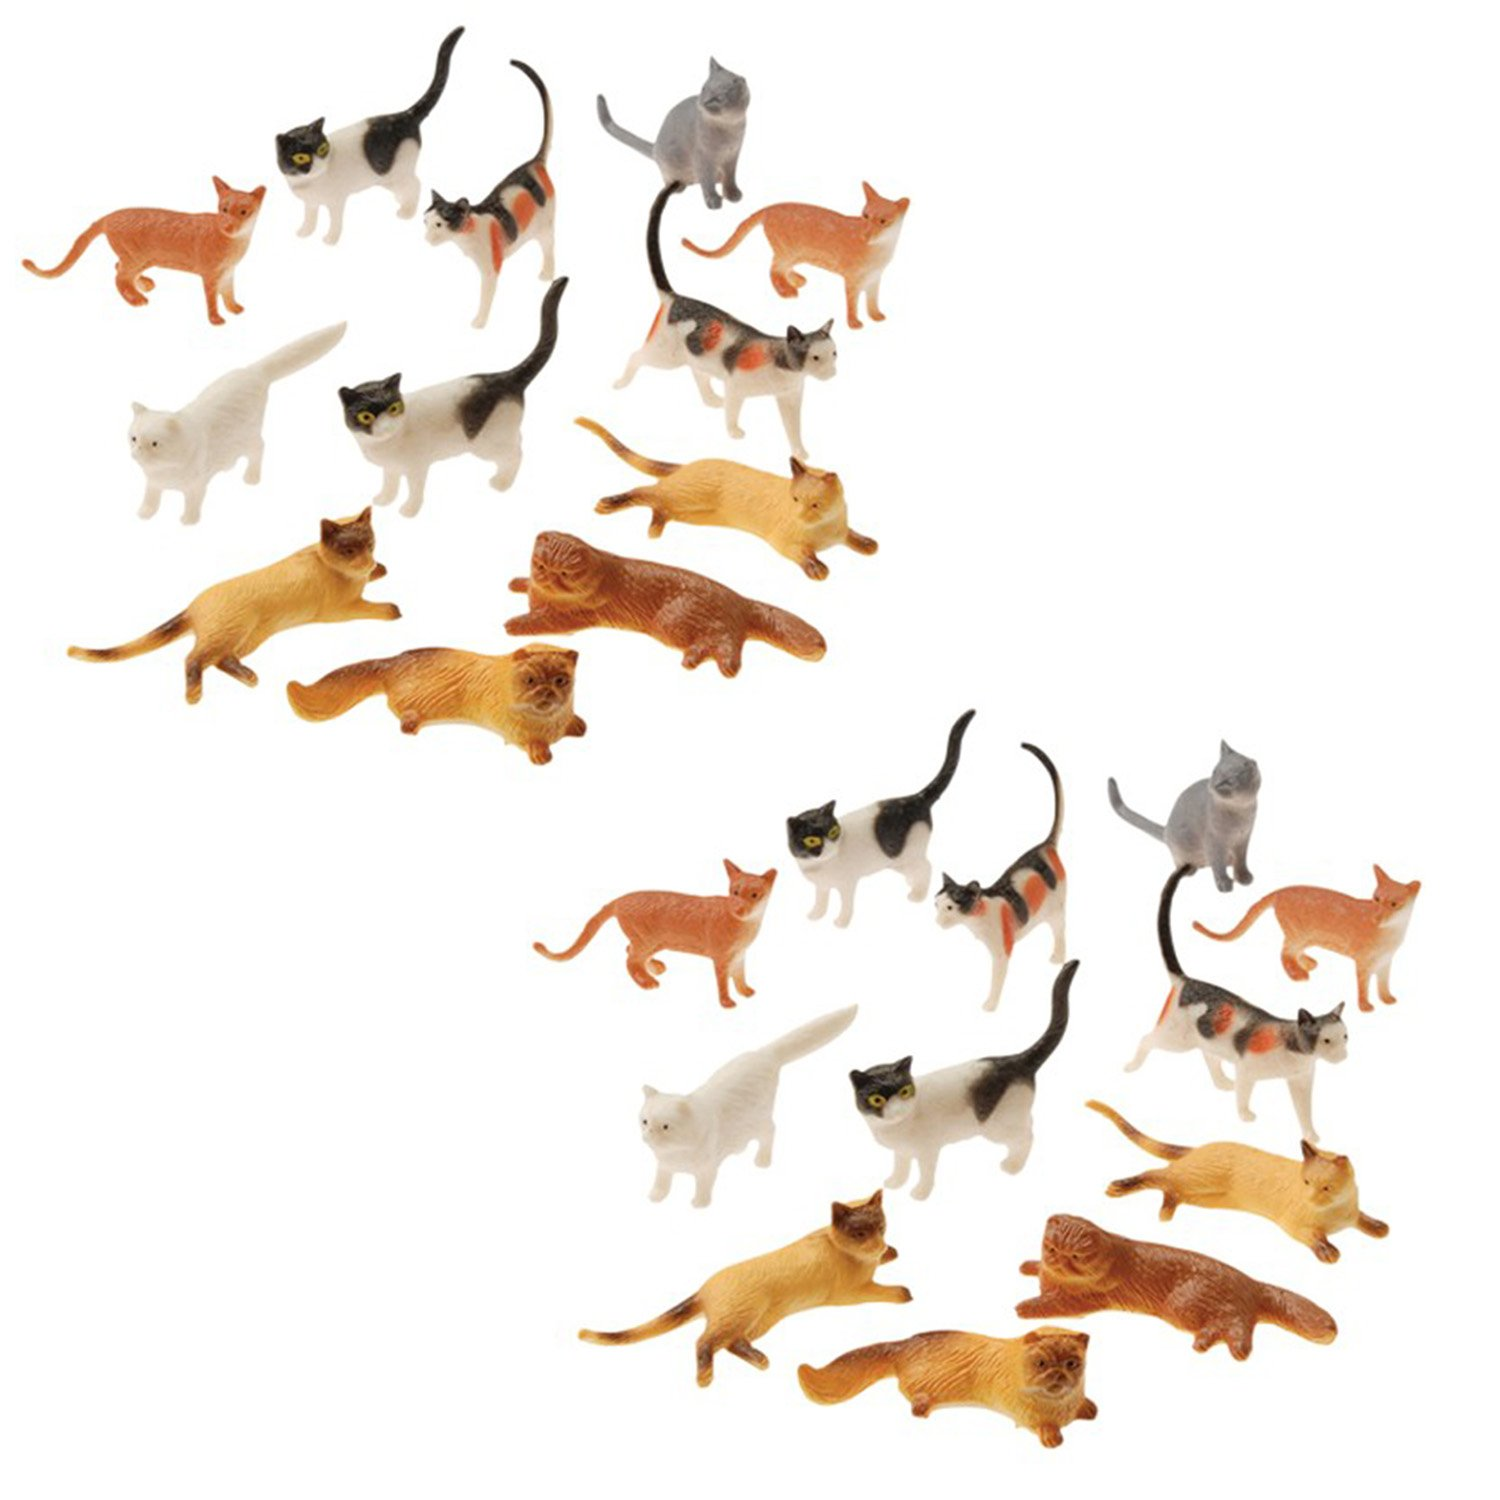 2 Assorted Styles Plastic Cat Figures 24 Count 2 Packs of 12 Each UST